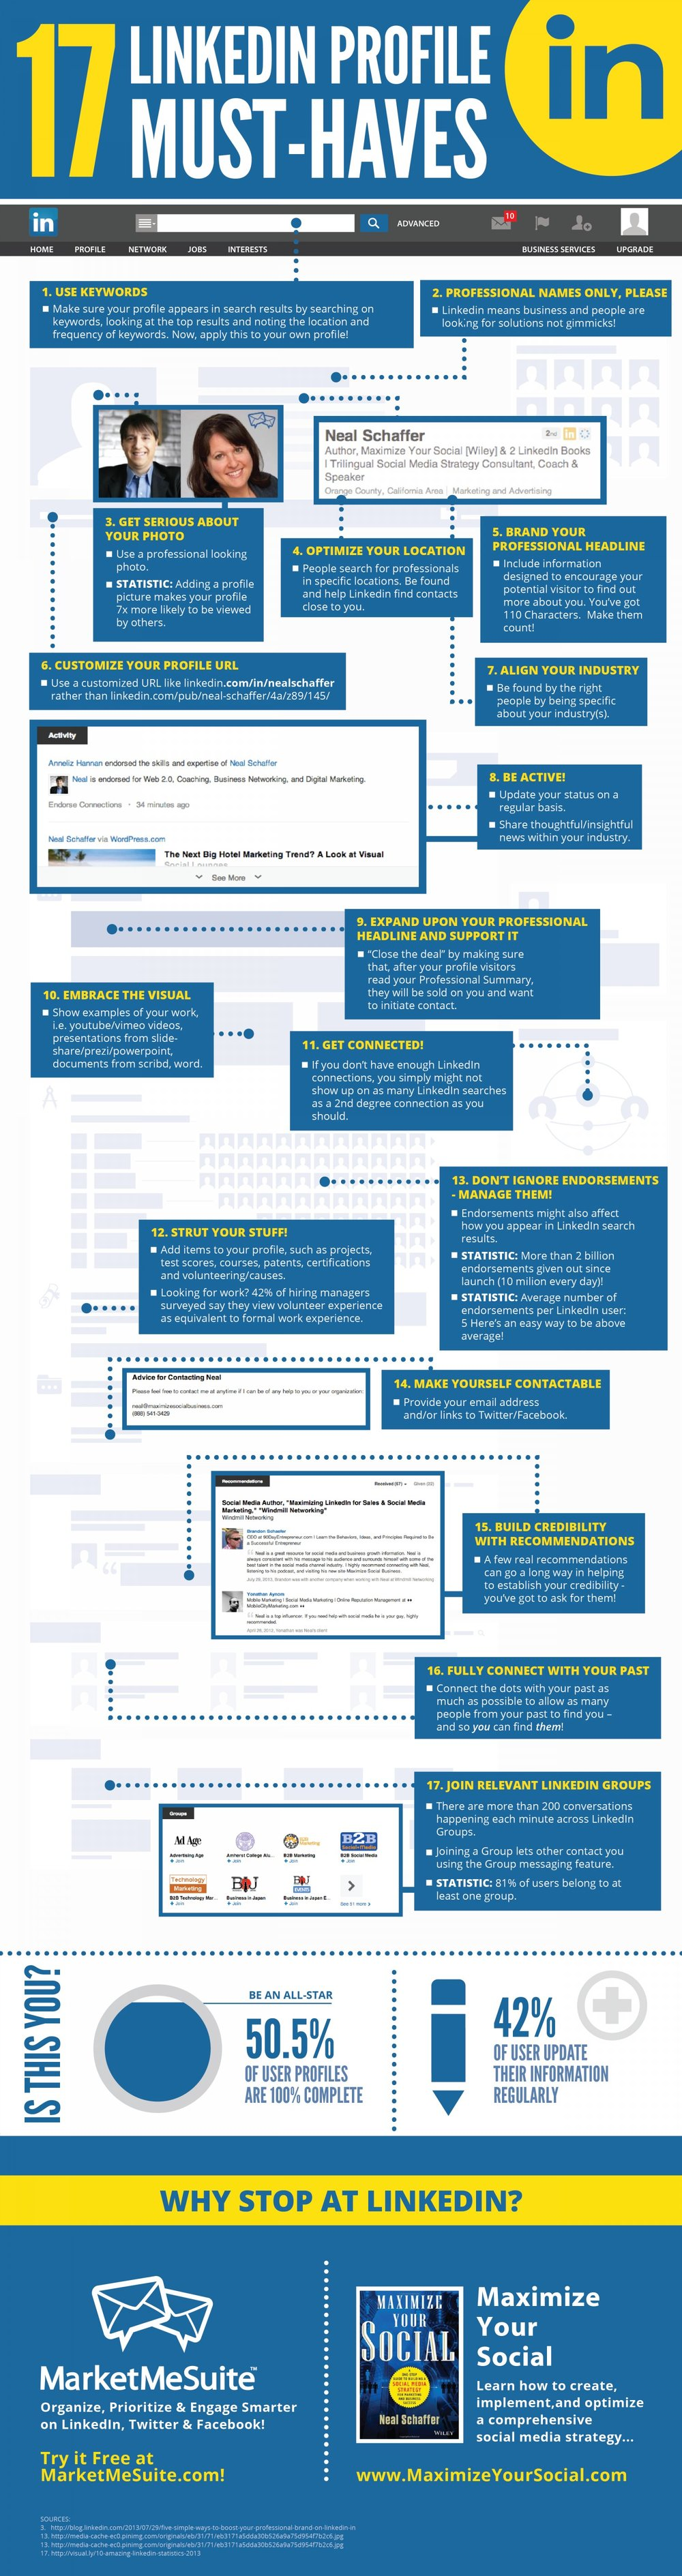 ultimate-linkedin-profile-tips-summary-infographic_5269e2b04cb4b_w1500.png